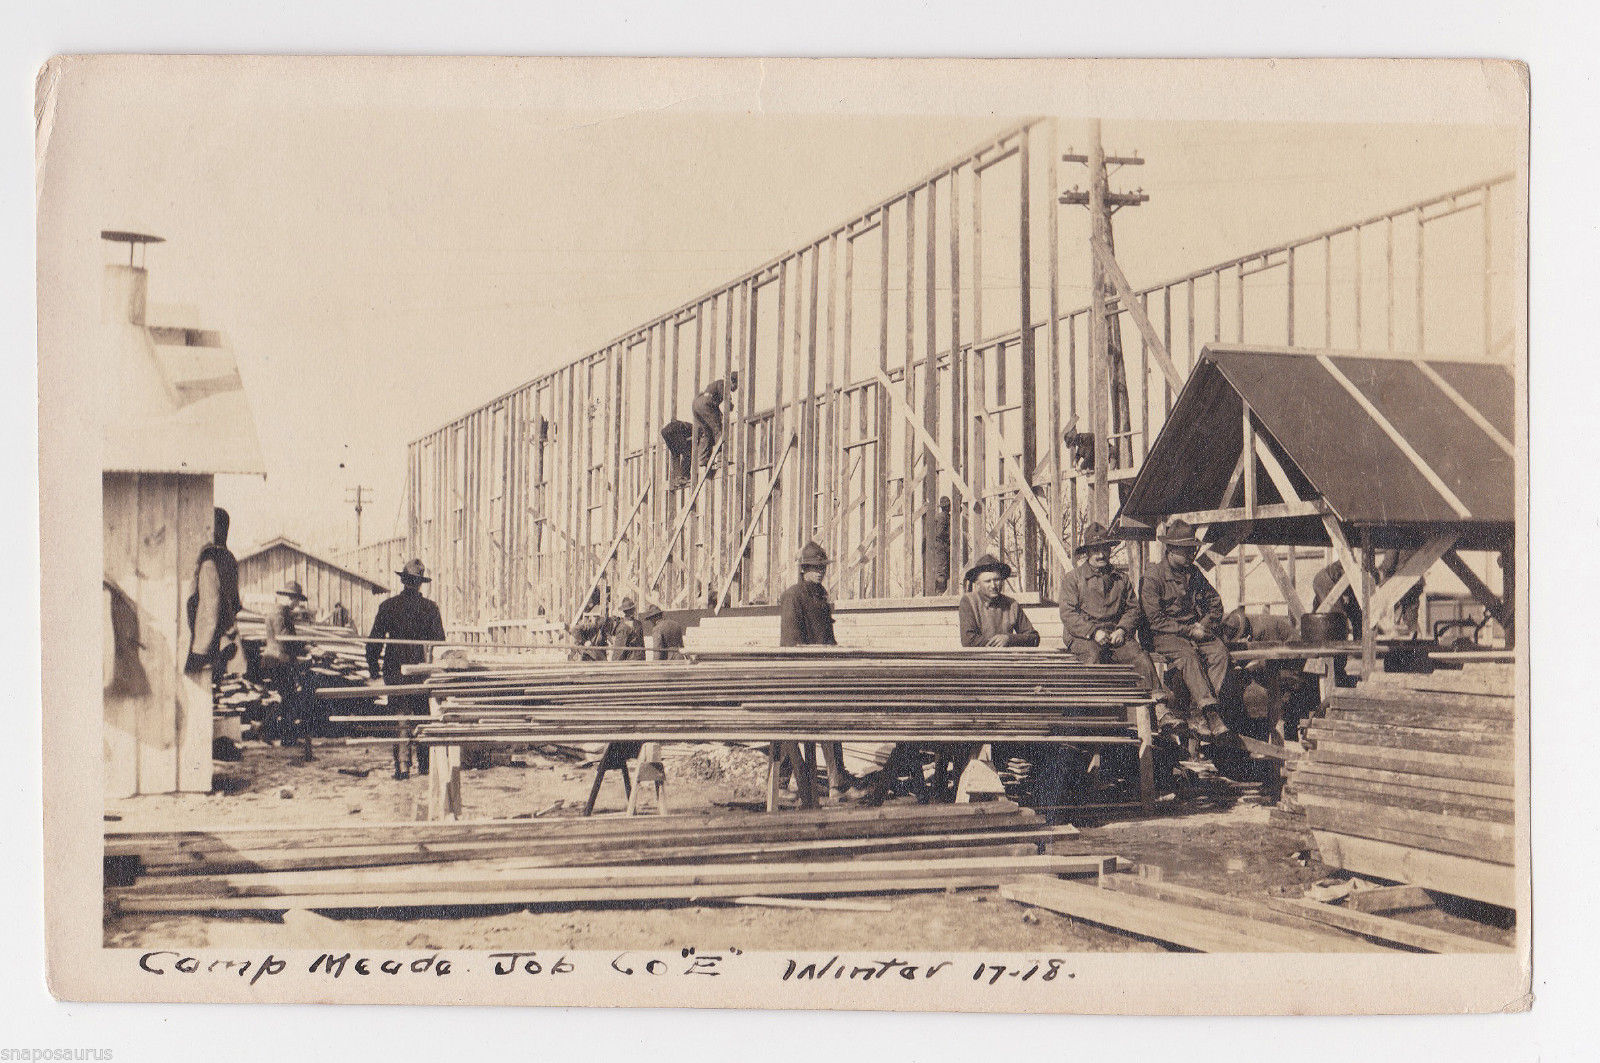 Camp Meade construction during winter 1917-1918